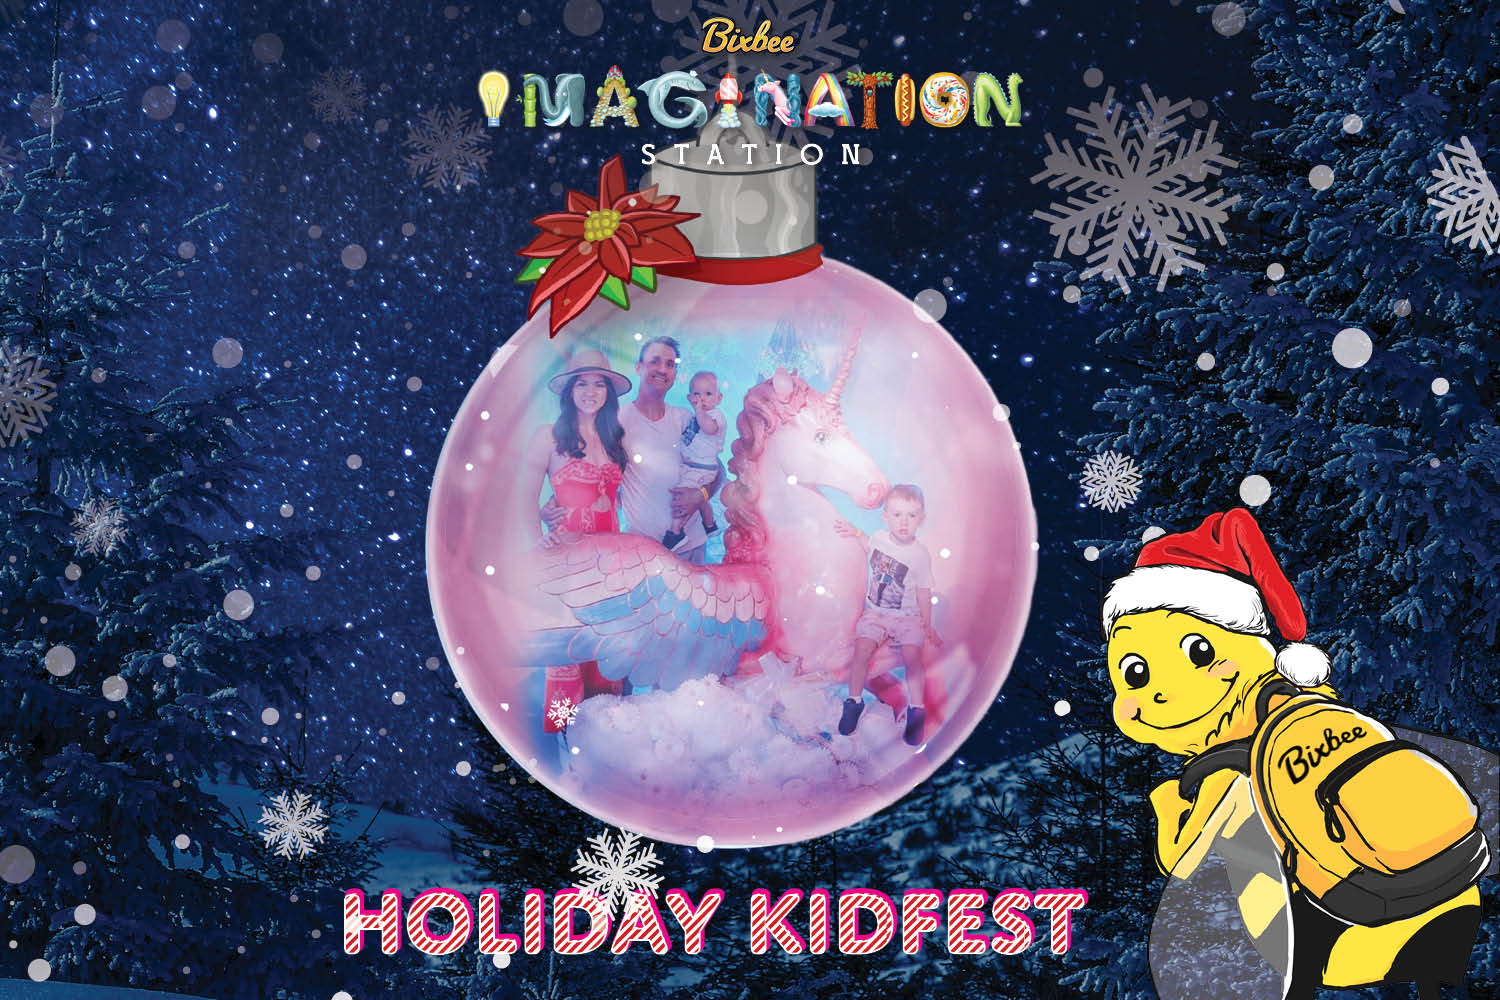 Tickets for Holiday Kidfest in Chicago from ShowClix